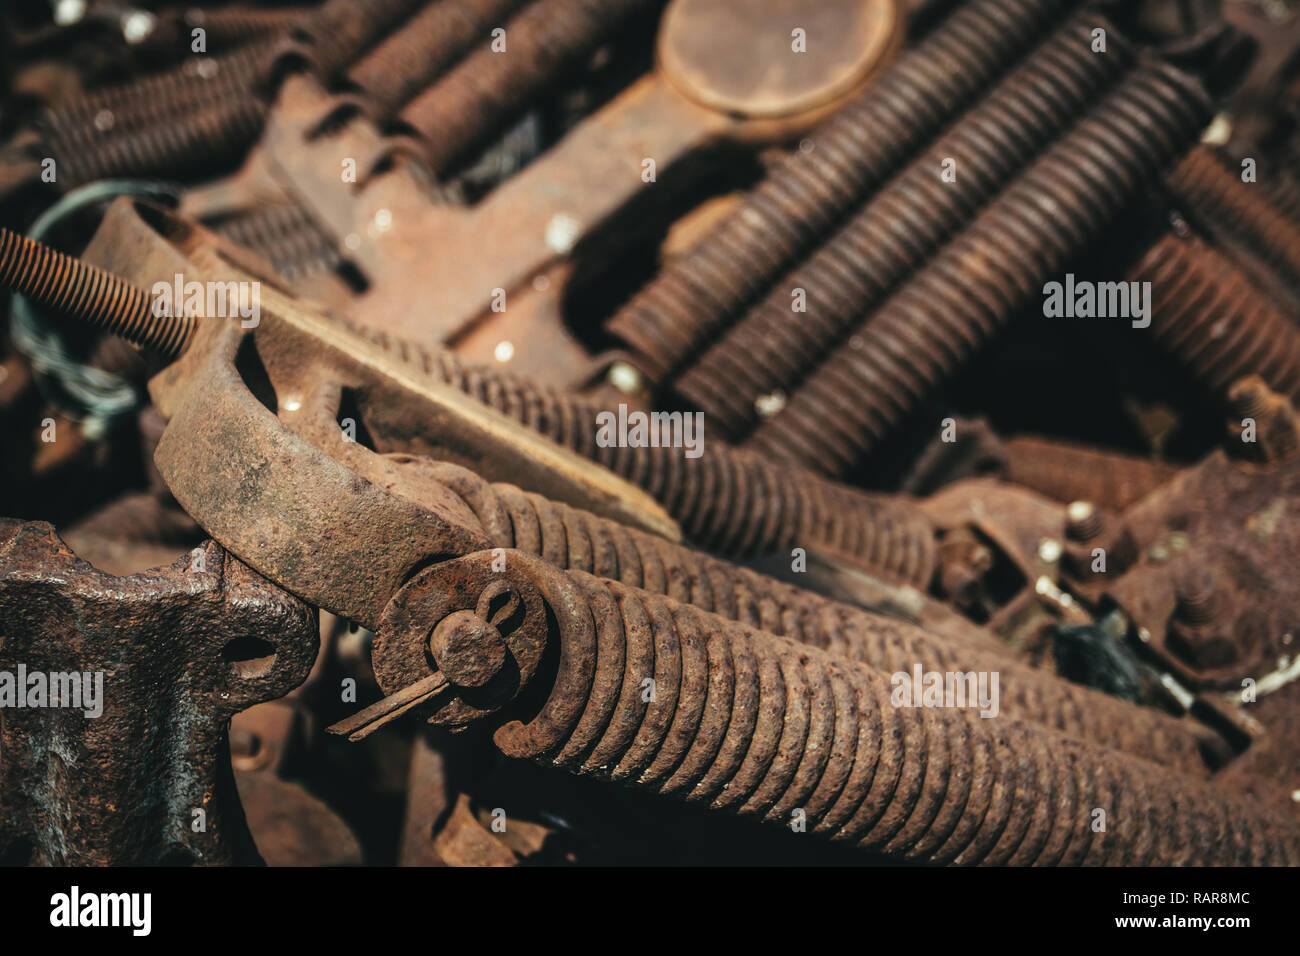 Rusty railroad car spring assemblies laying in a pile on the ground. - Stock Image